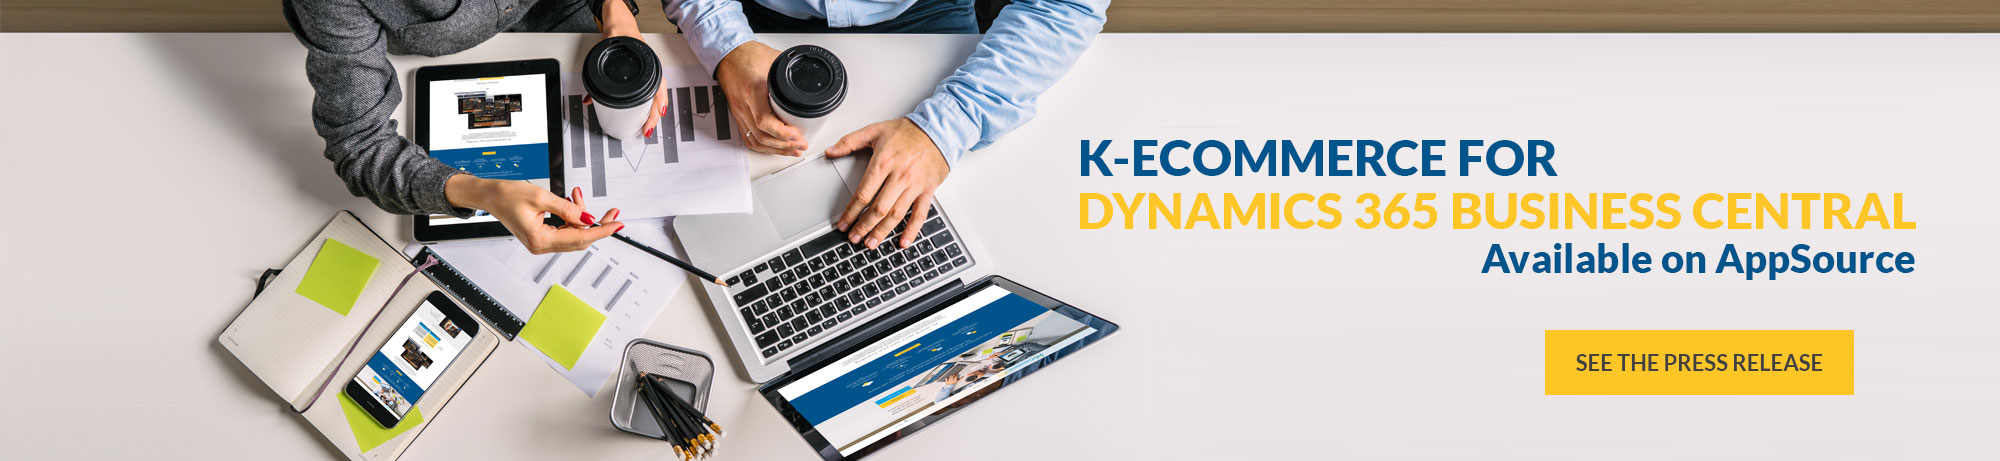 k-eCommerce for Dynamics 365 Business Central